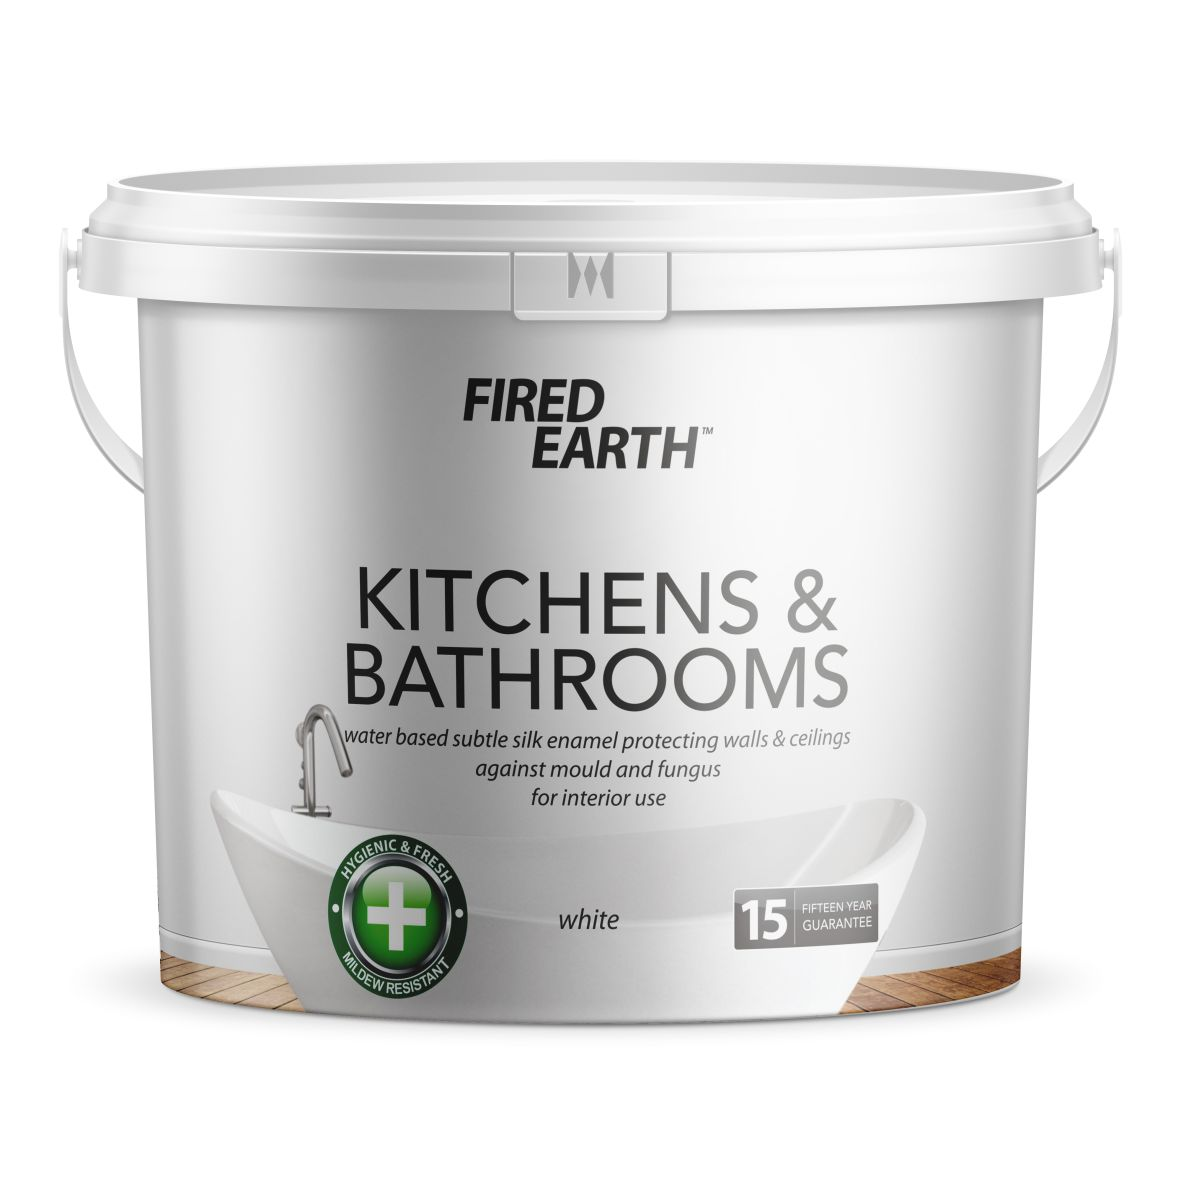 Copy of FE Kitchens & Bathrooms